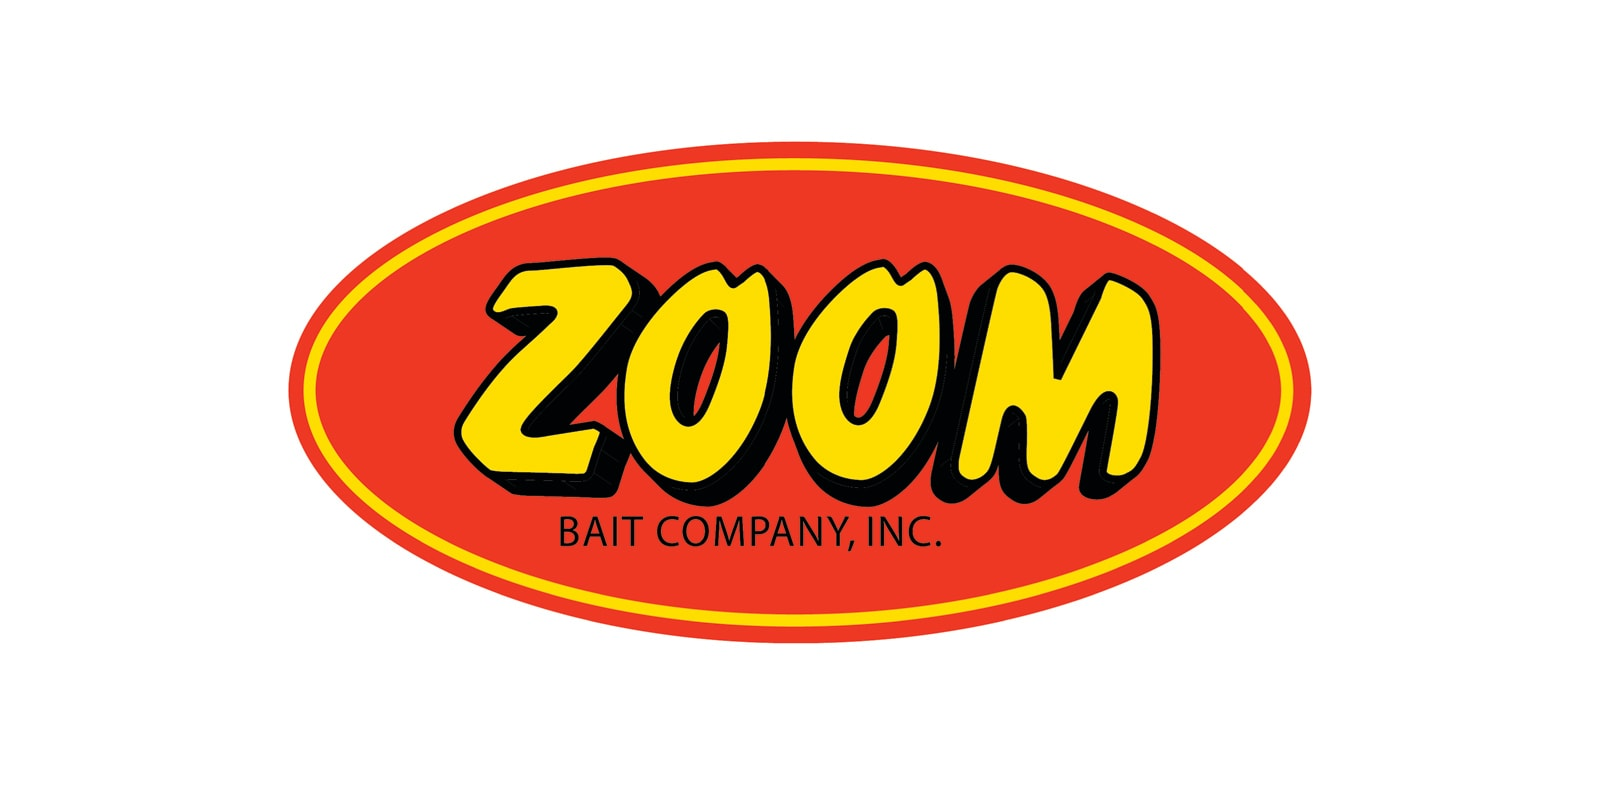 MidwayUSA is excited to announce the addition of Zoom products to its ever expanding offering of fishing products.  Founded in 1977, Zoom offers anglers countless styles of lures in over 400 unique color patterns.  MidwayUSA Customers are serious about their hobbies, and we're excited to be able to satisfy their demand for high-quality fishing gear.  To view the extensive product offering from Zoom, visit https://www.midwayusa.com/zoom/b?bid=1101576 .  About MidwayUSA  Both country kids from Missouri, Larry and Brenda Potterfield turned their passion for shooting sports into a career by opening a small gun shop in 1977 that would eventually become MidwayUSA (www.midwayusa.com).  They instilled family values like honesty, integrity and respect for others into the business, and strive to maintain this culture with each Employee added to their growing team. For 42 years, MidwayUSA has maintained an unyielding focus on Customer Satisfaction and continues to offer JUST ABOUT EVERYTHING® for Shooting, Hunting and the Outdoors.